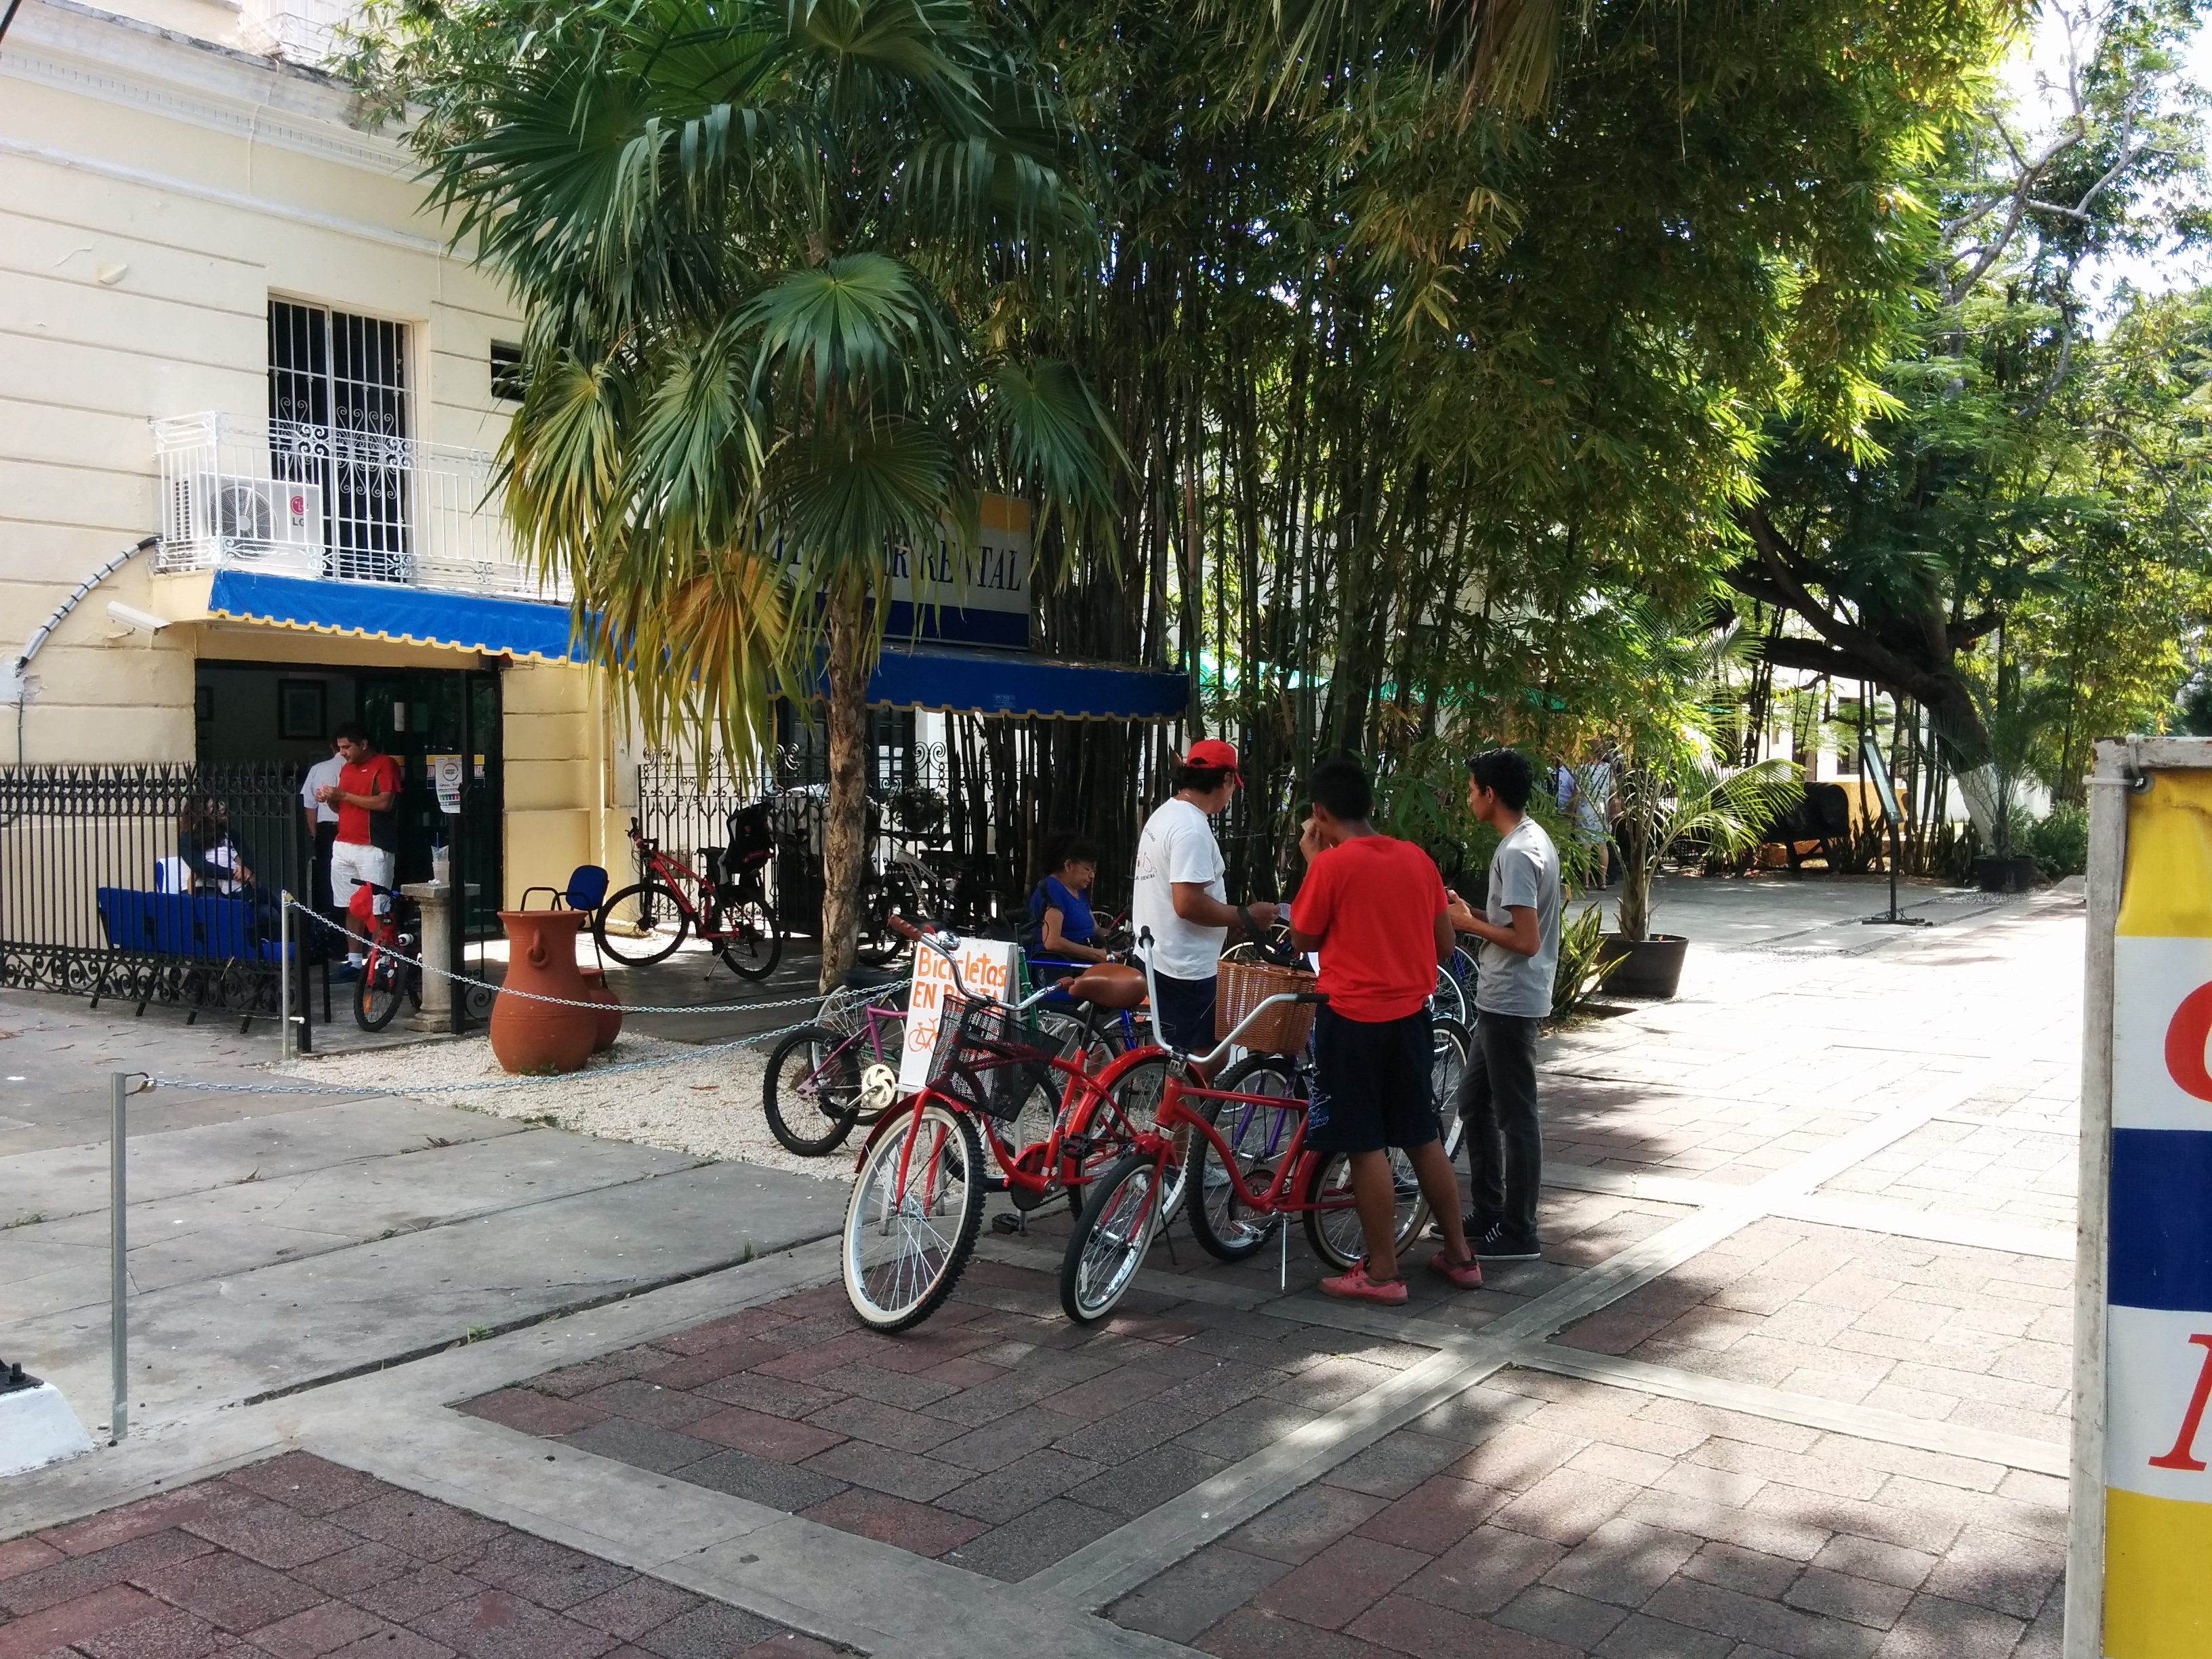 The Bici Ruta - A complete guide to Merida, Mexico